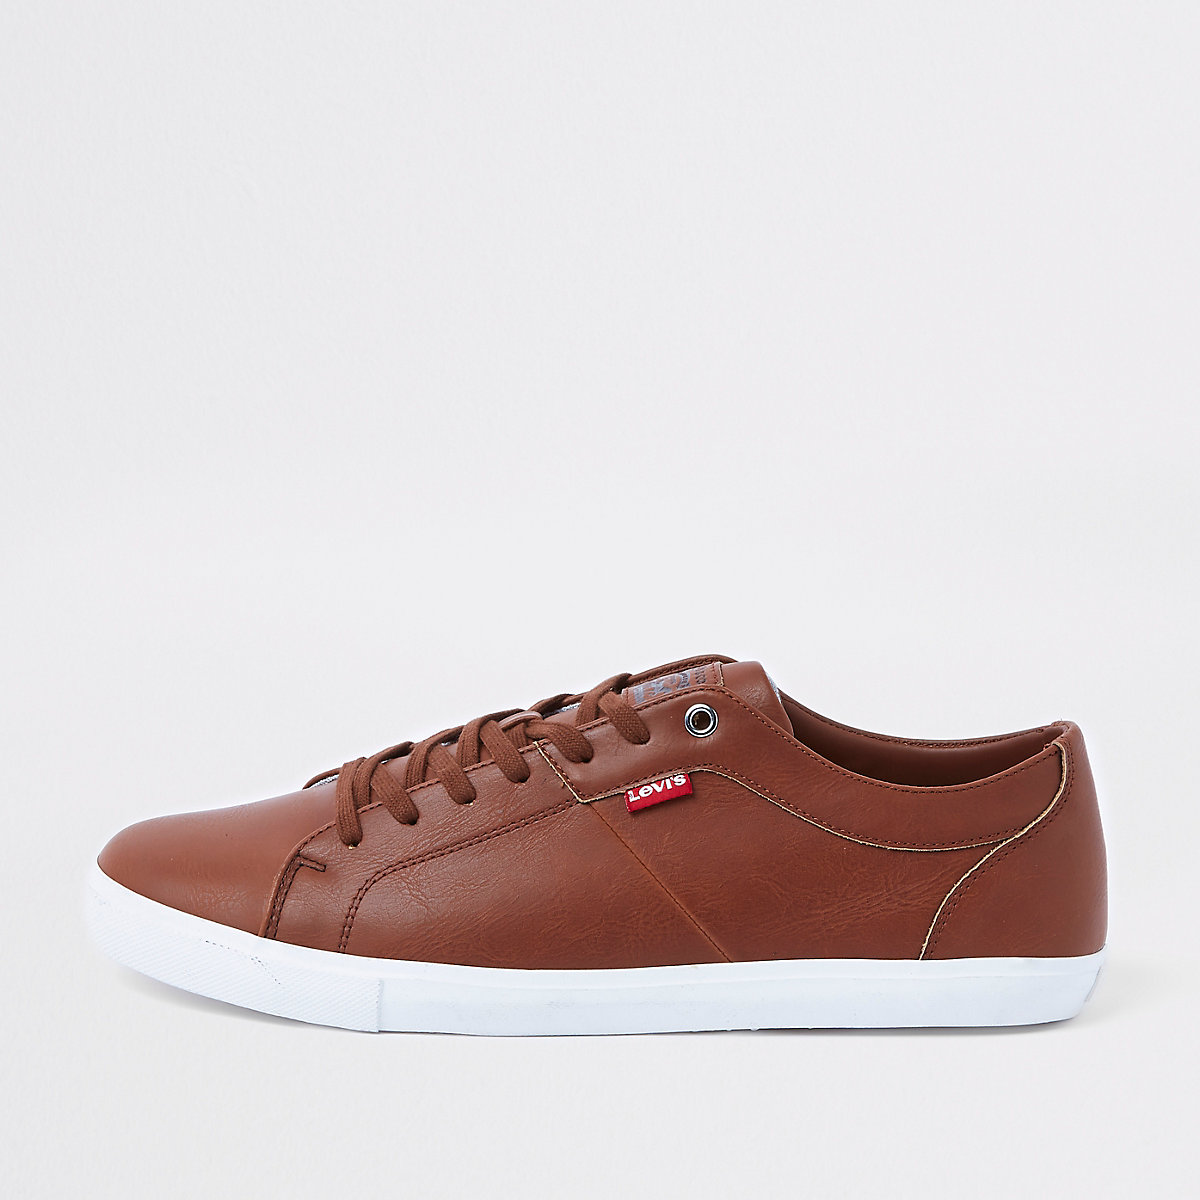 Levi's Up Brown Leather Lace Trainers dhQrCsxt